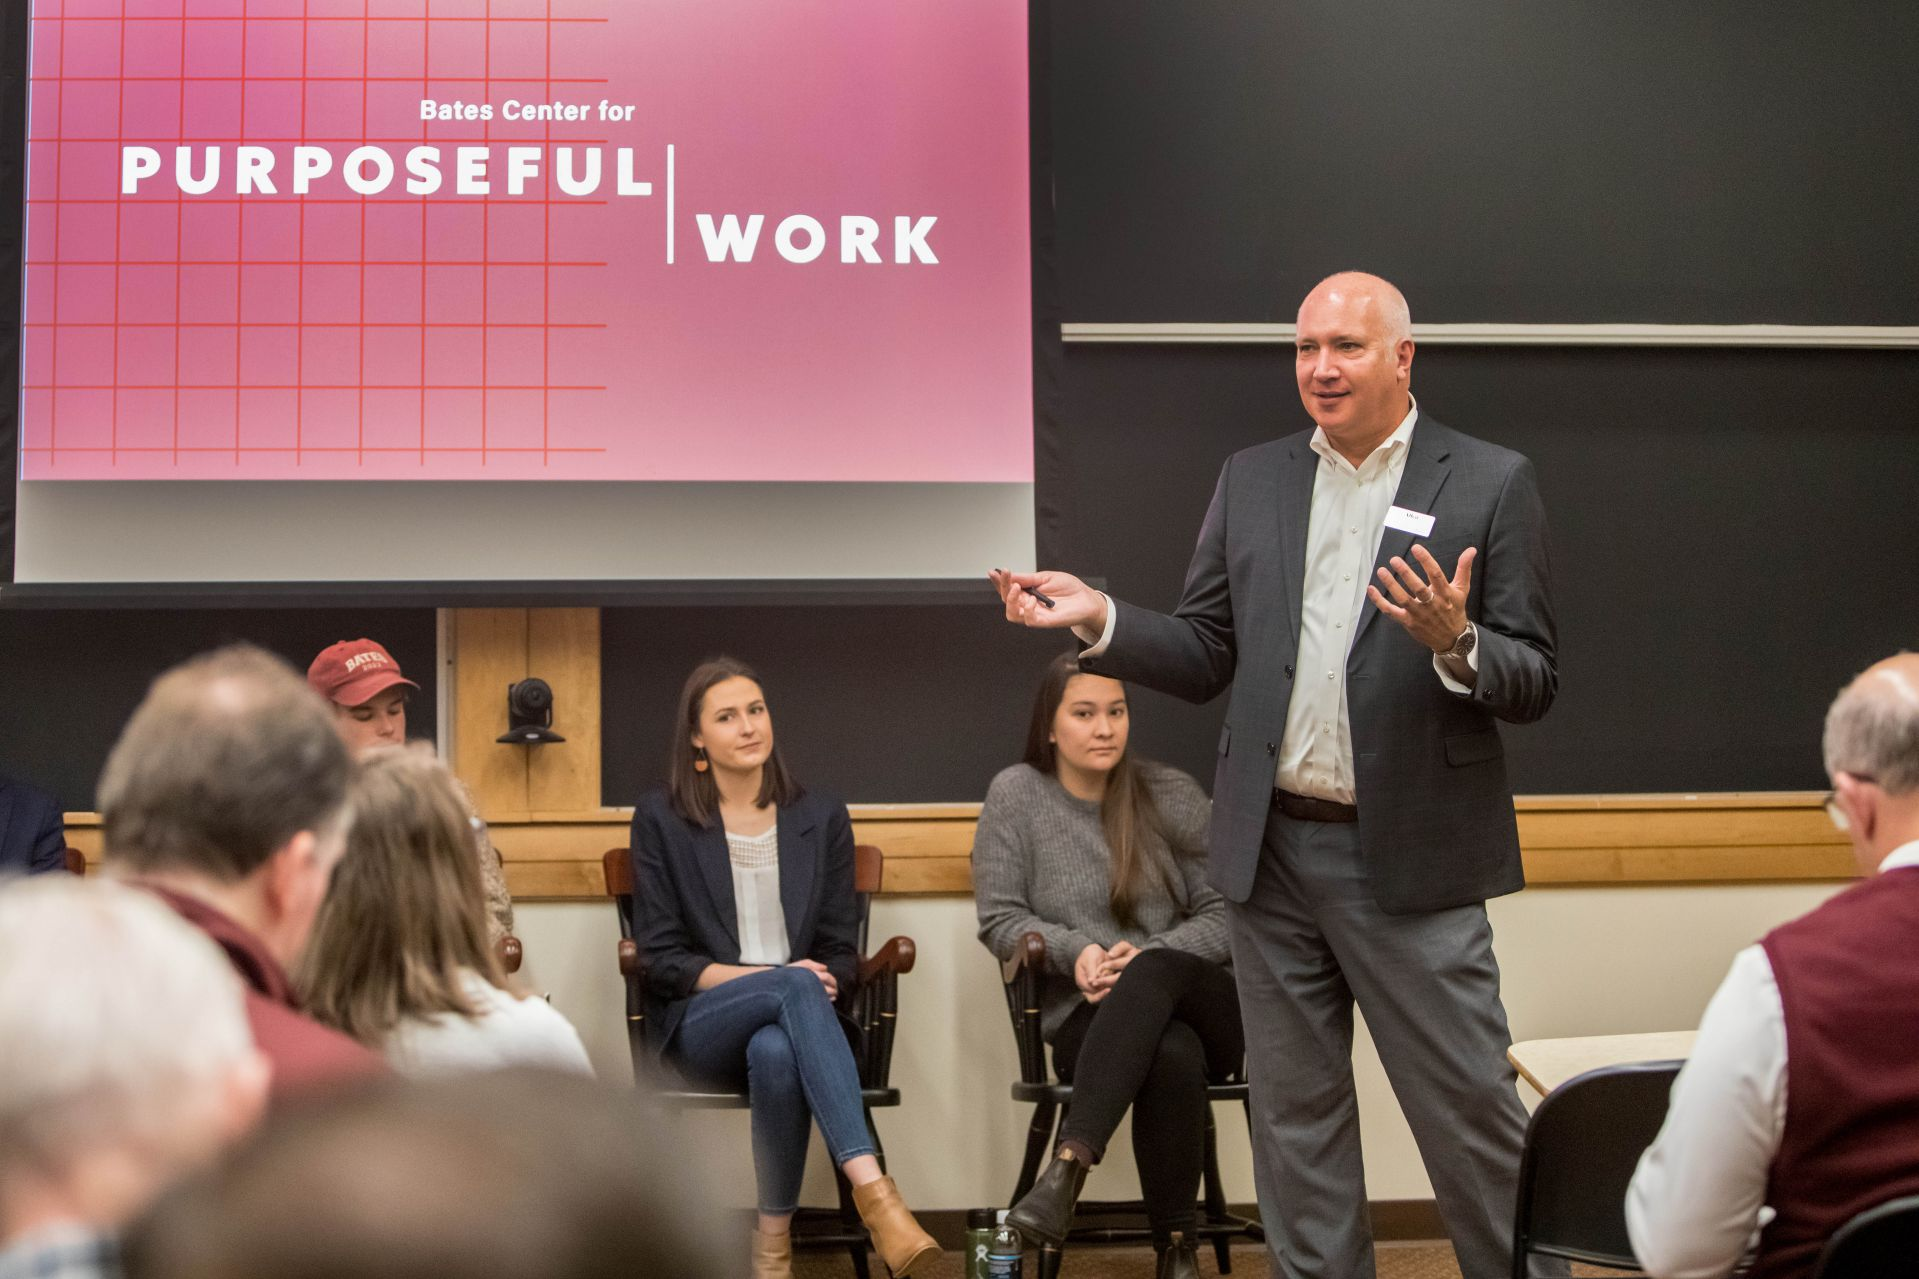 Allen Delong, who leads the Bates Center for Purposeful Work, offer a Back to Bates program in October 2019. (Rene Roy for Bates College)